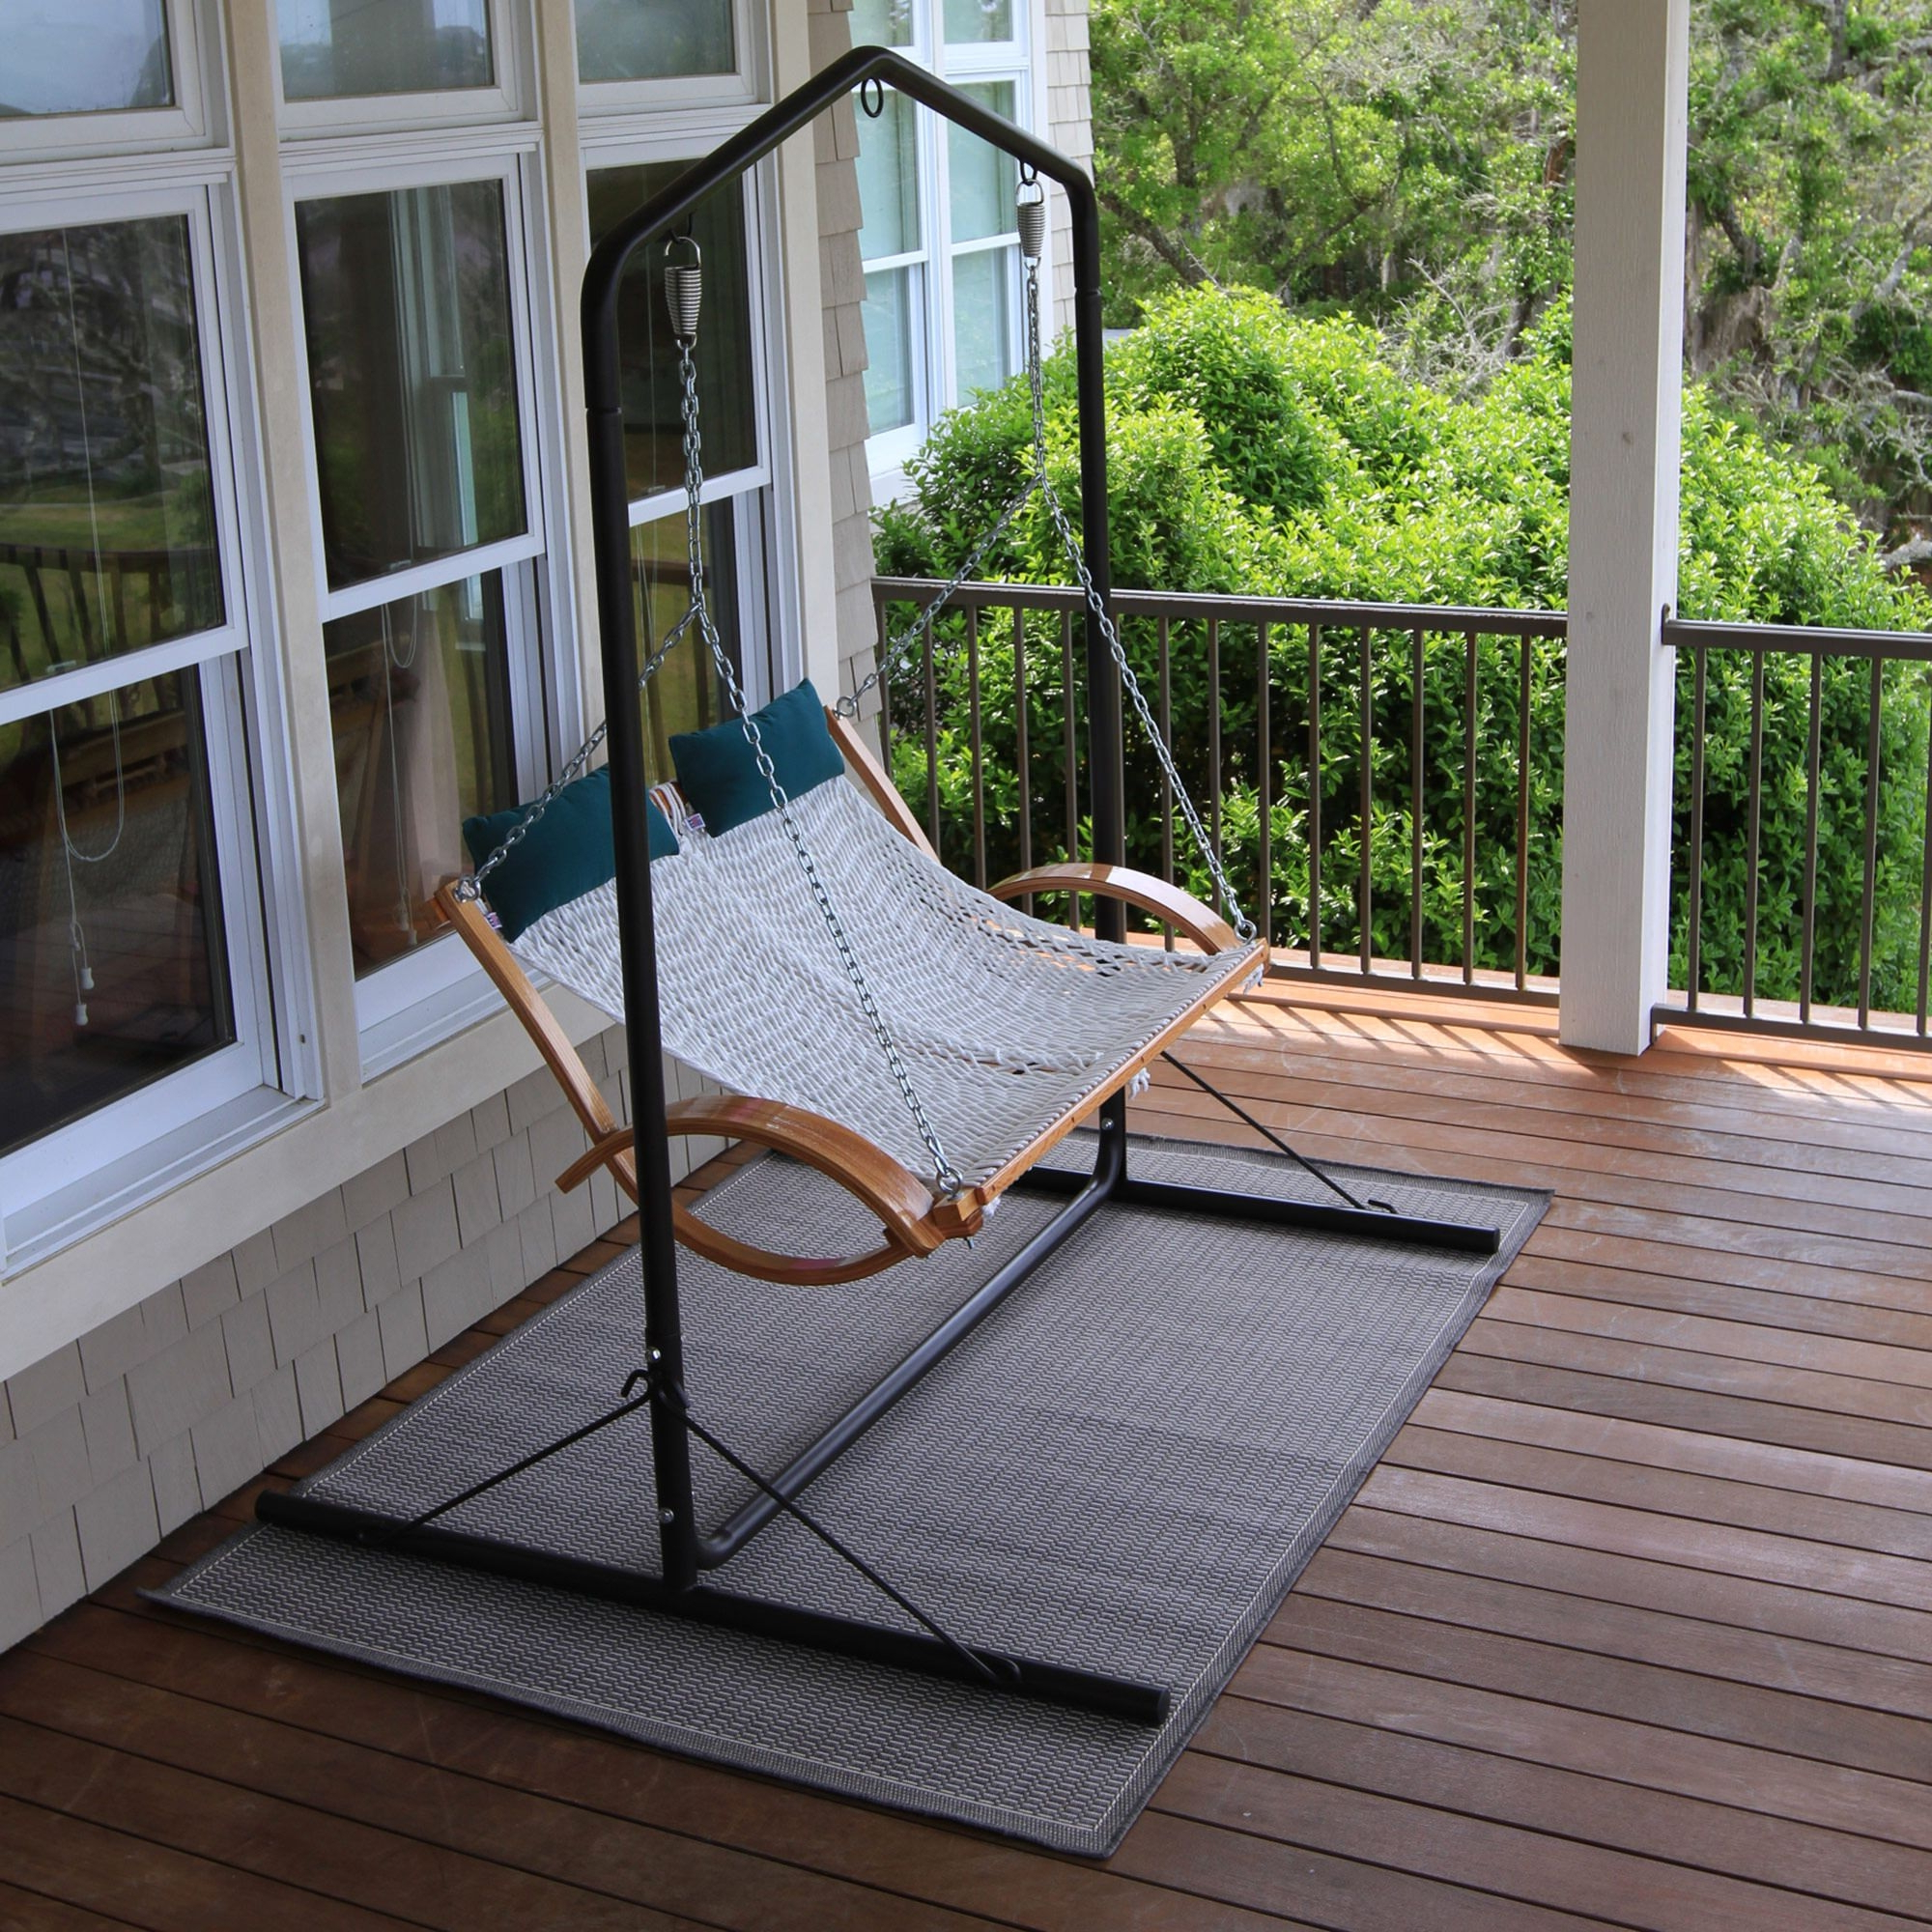 Porch Swings With Stand For Well Known Metal Porch Swings With Stands (View 8 of 30)